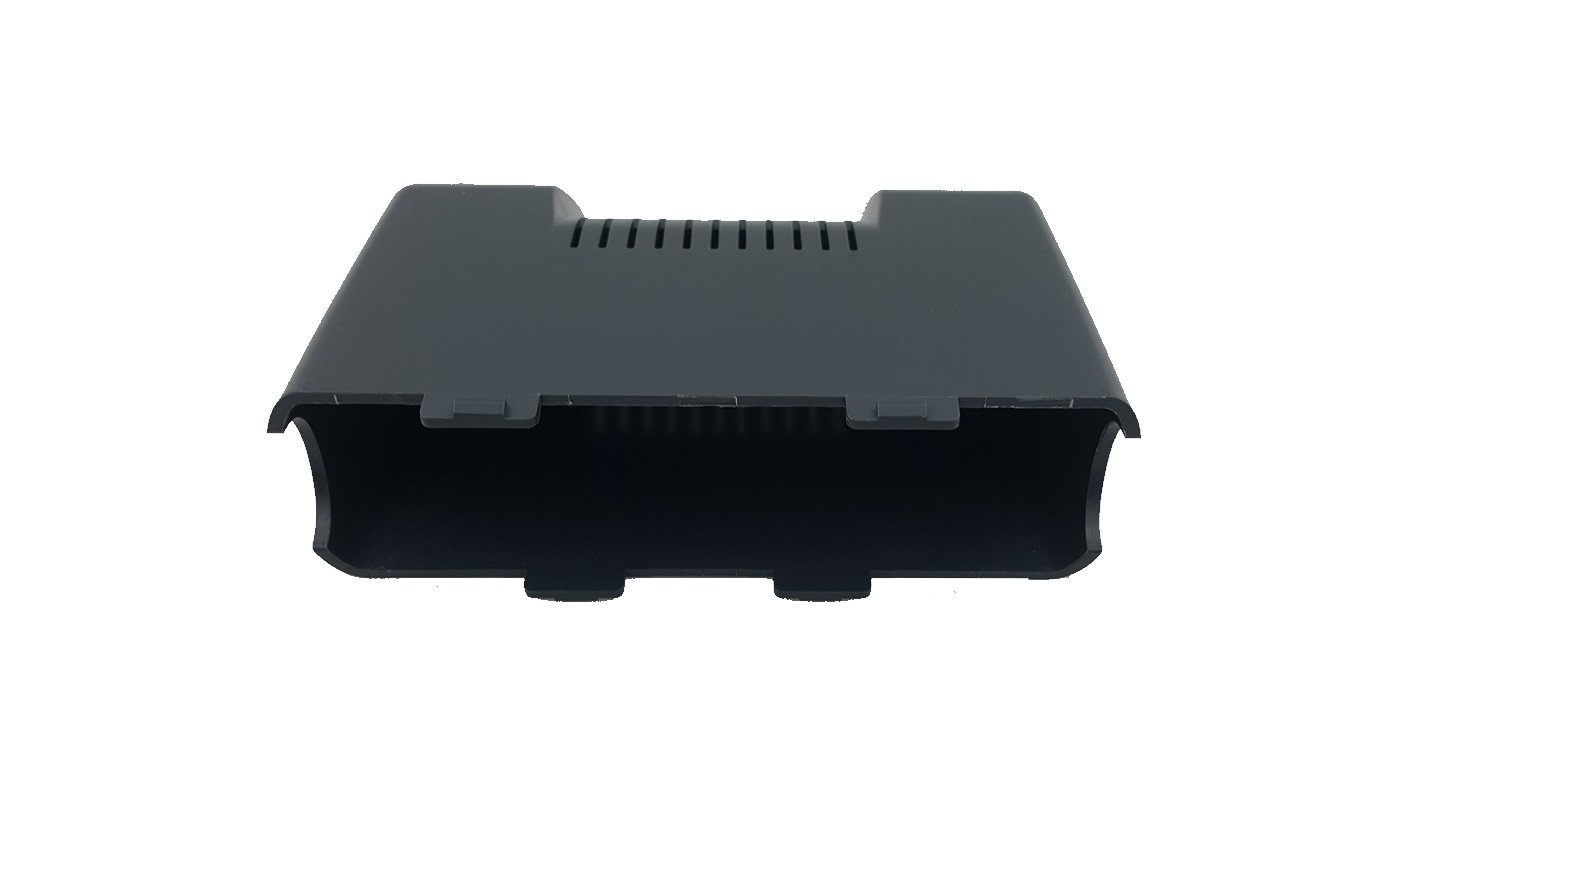 Cisco Linksys Phone Foot Stand SPA303G, SPA502G, SPA504G, SPA508G, SPA509G, SPA512G, SPA514G, SPA525G, SPA921, SPA922, SPA941, SPA942